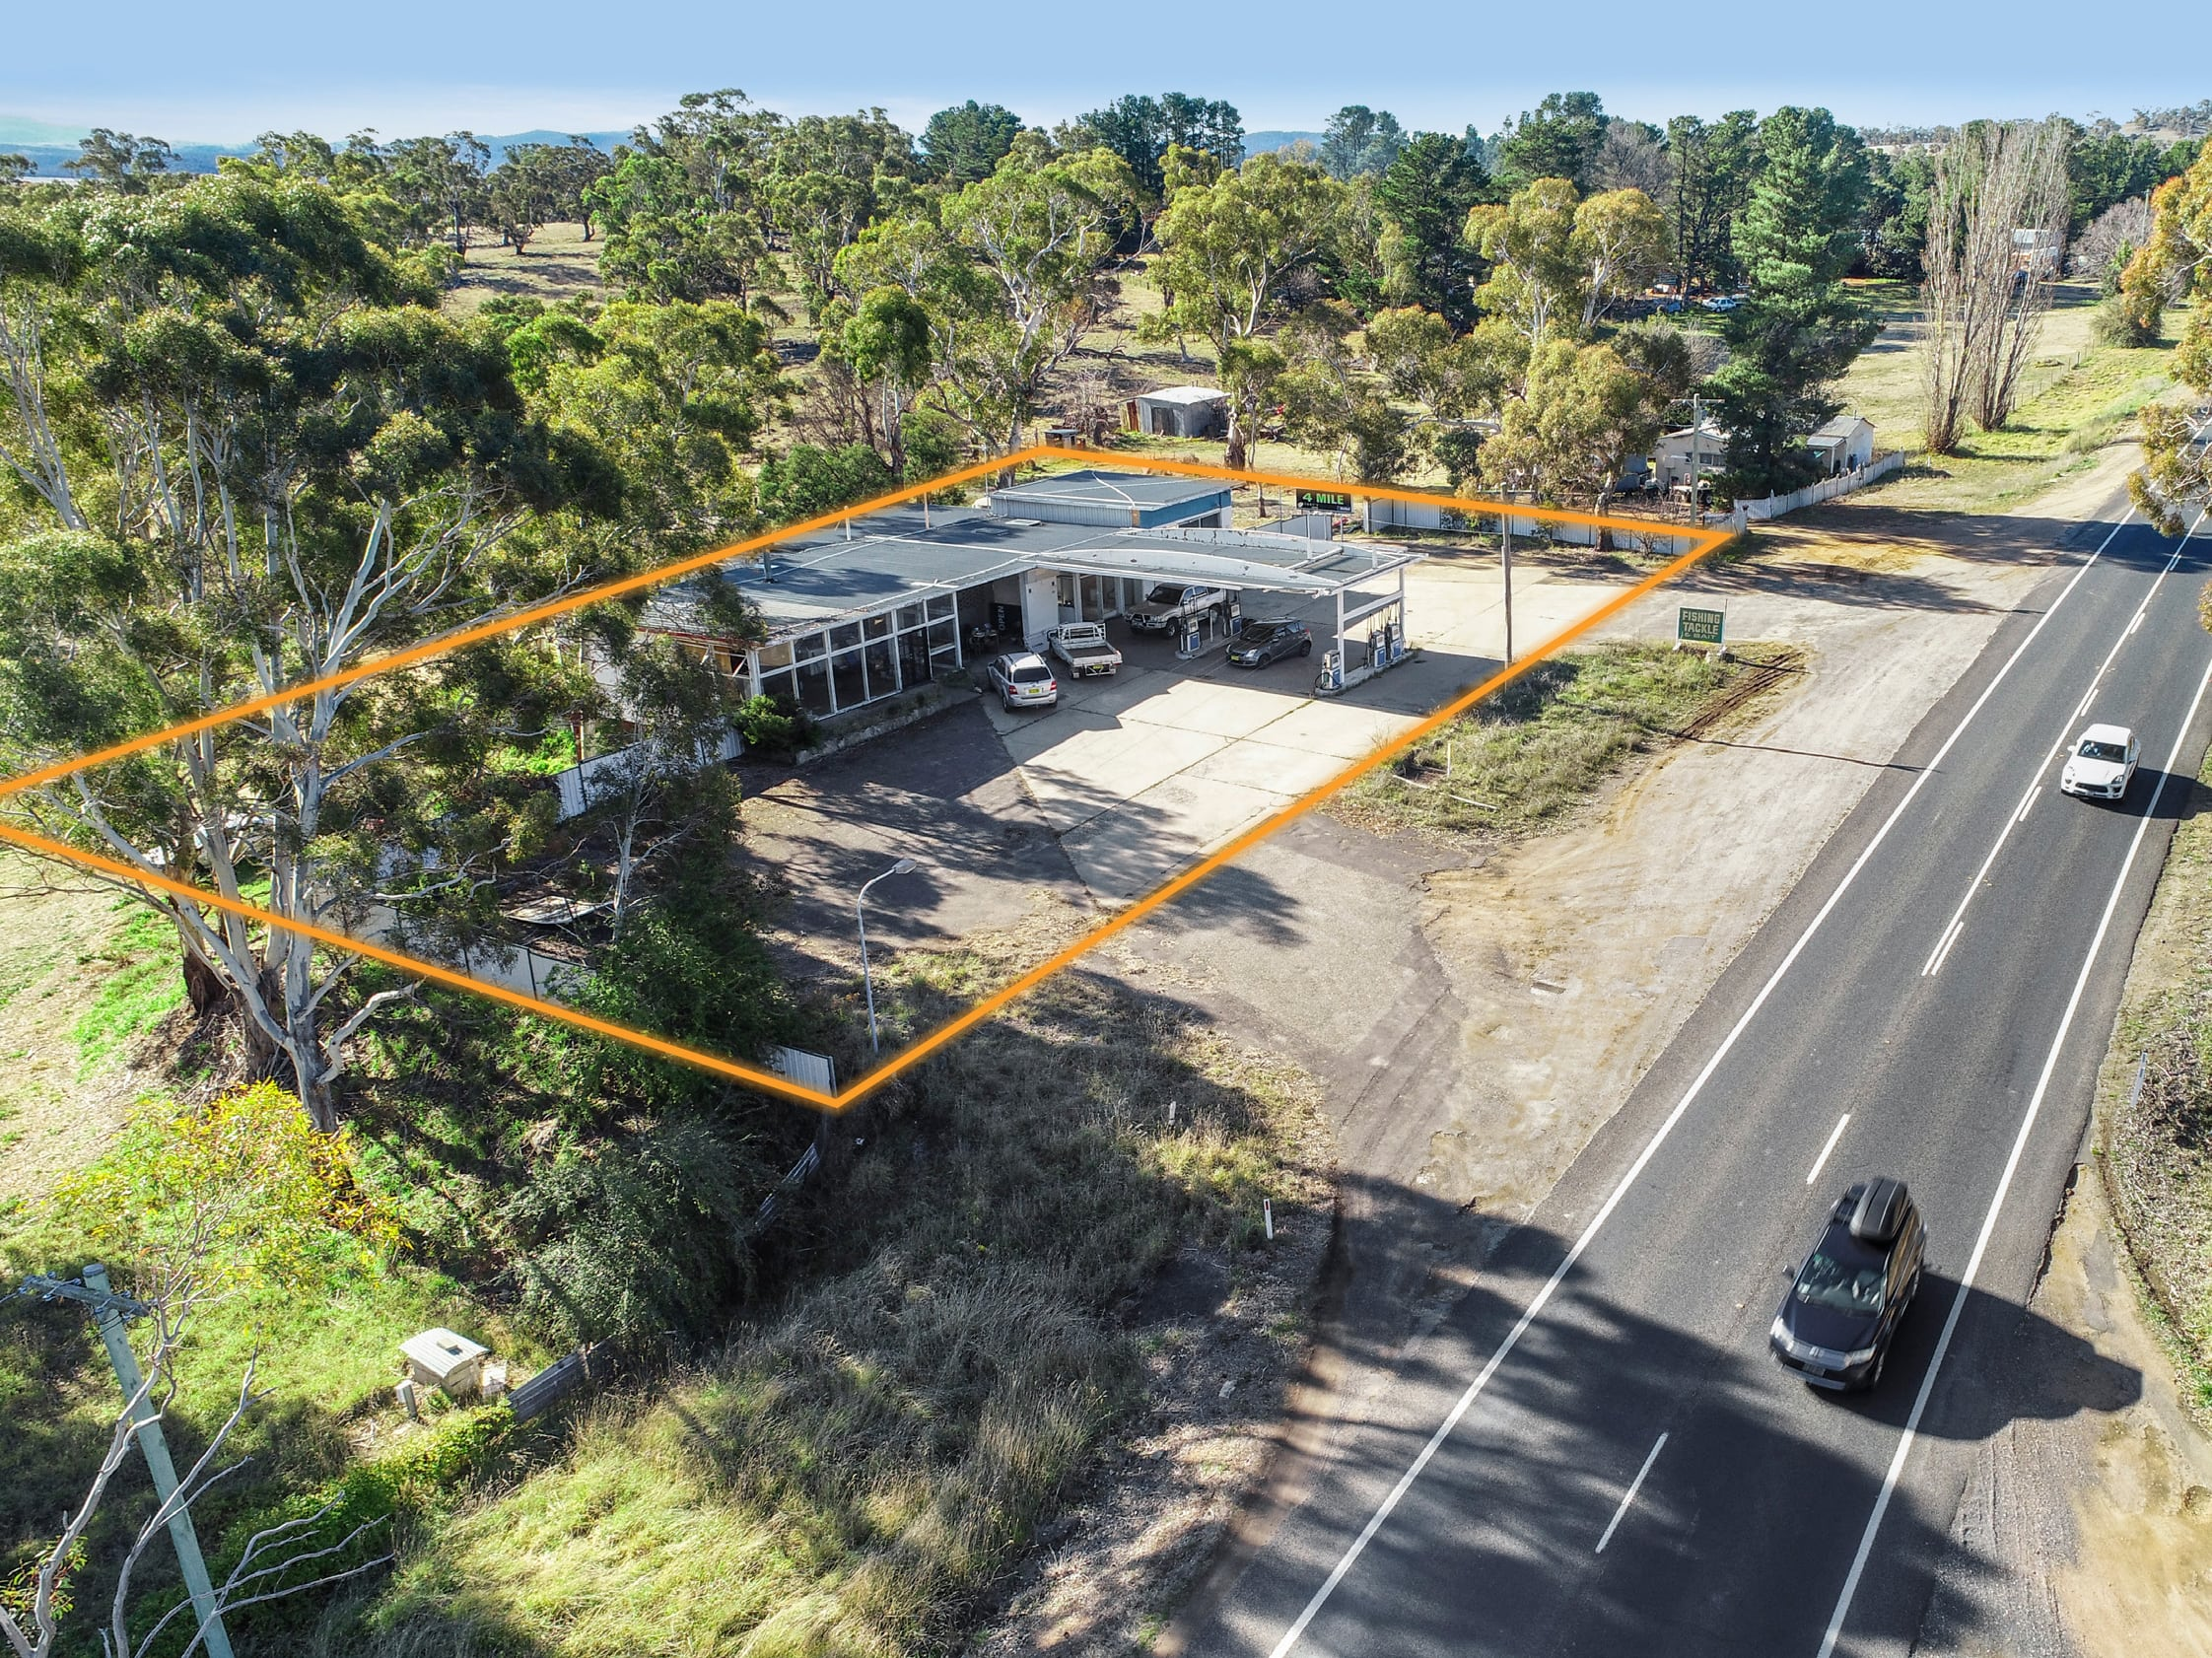 Mortagee in Possession – Highway Roadhouse Service Station